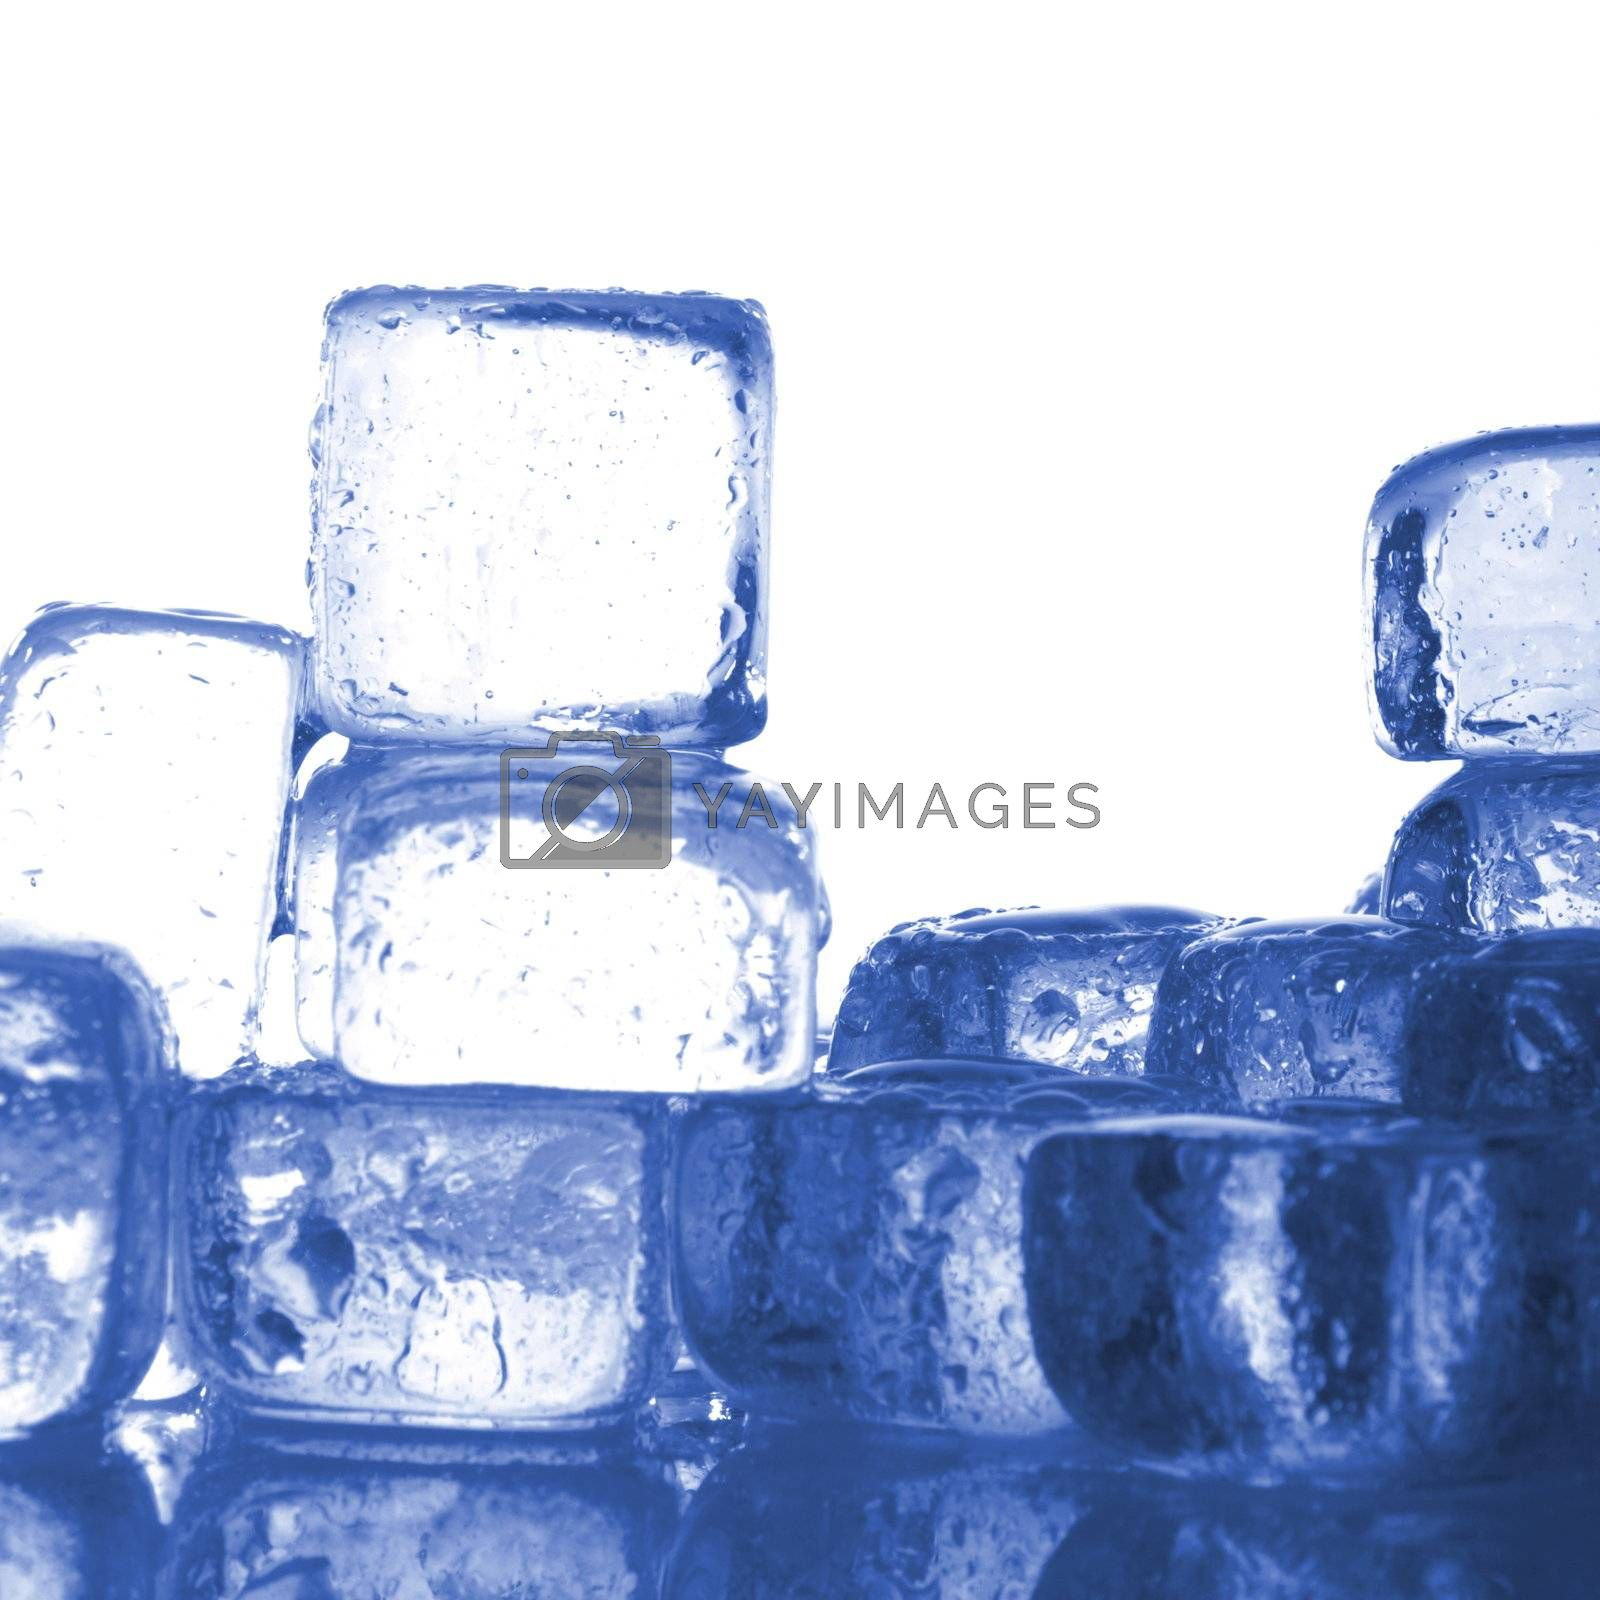 blue ice cubes with water drops melting